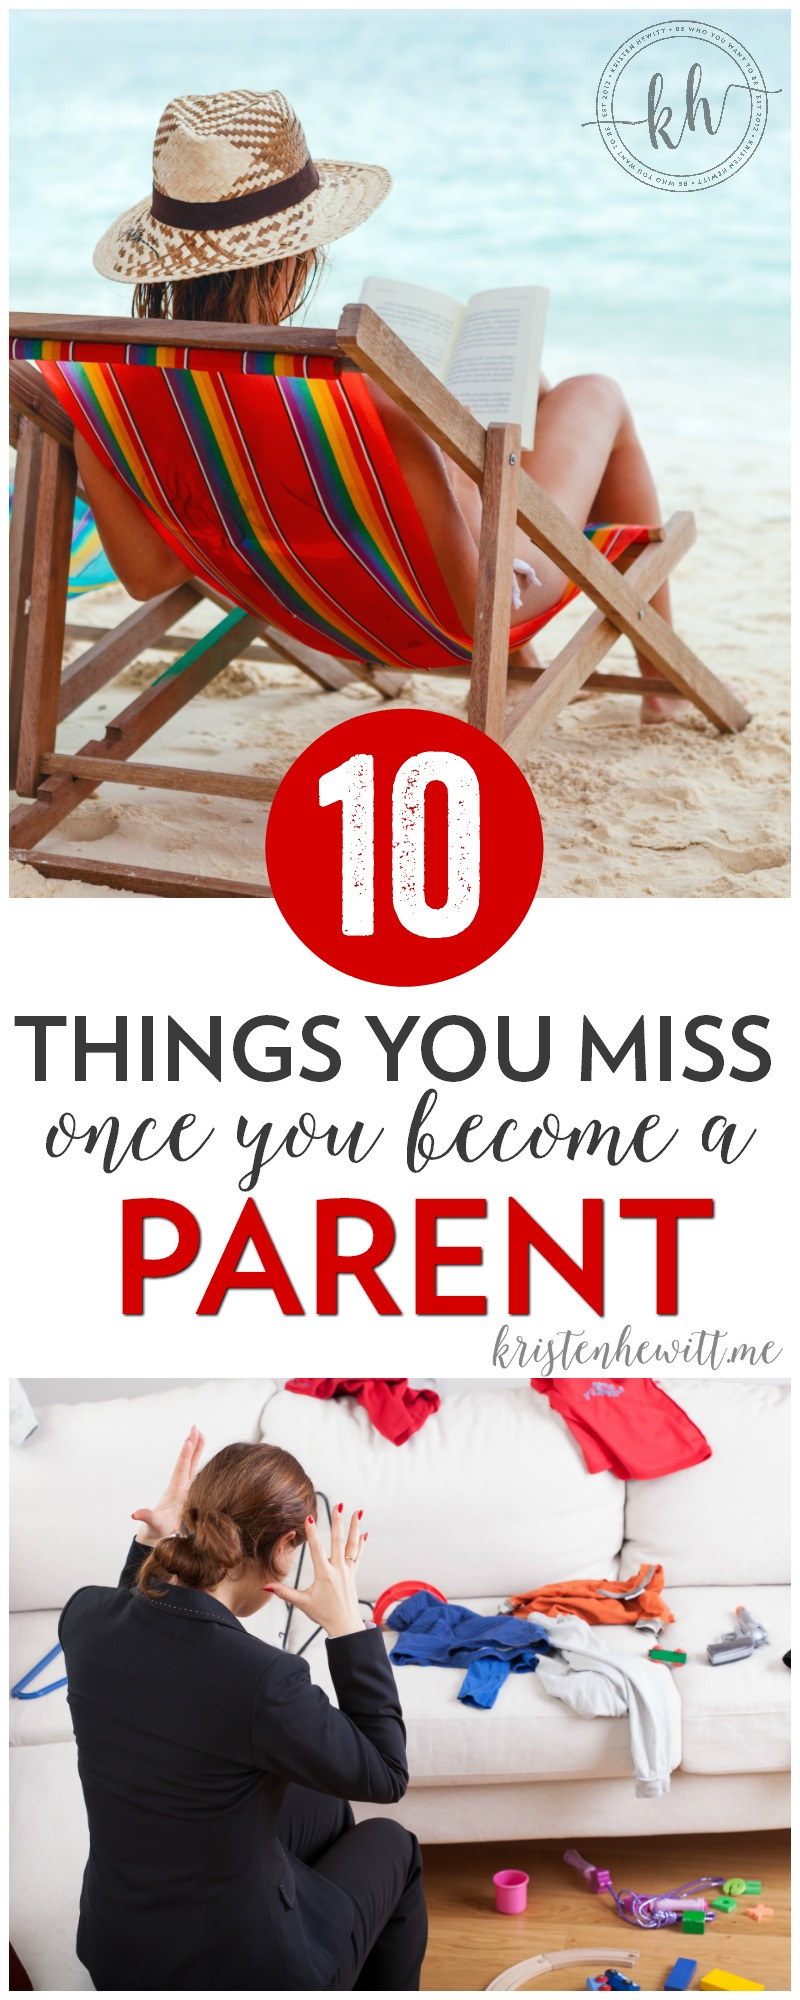 Being a parent is the greatest gift in the world. It's also exhausting. Here are the 10 things you'll miss the most once you become a parent!